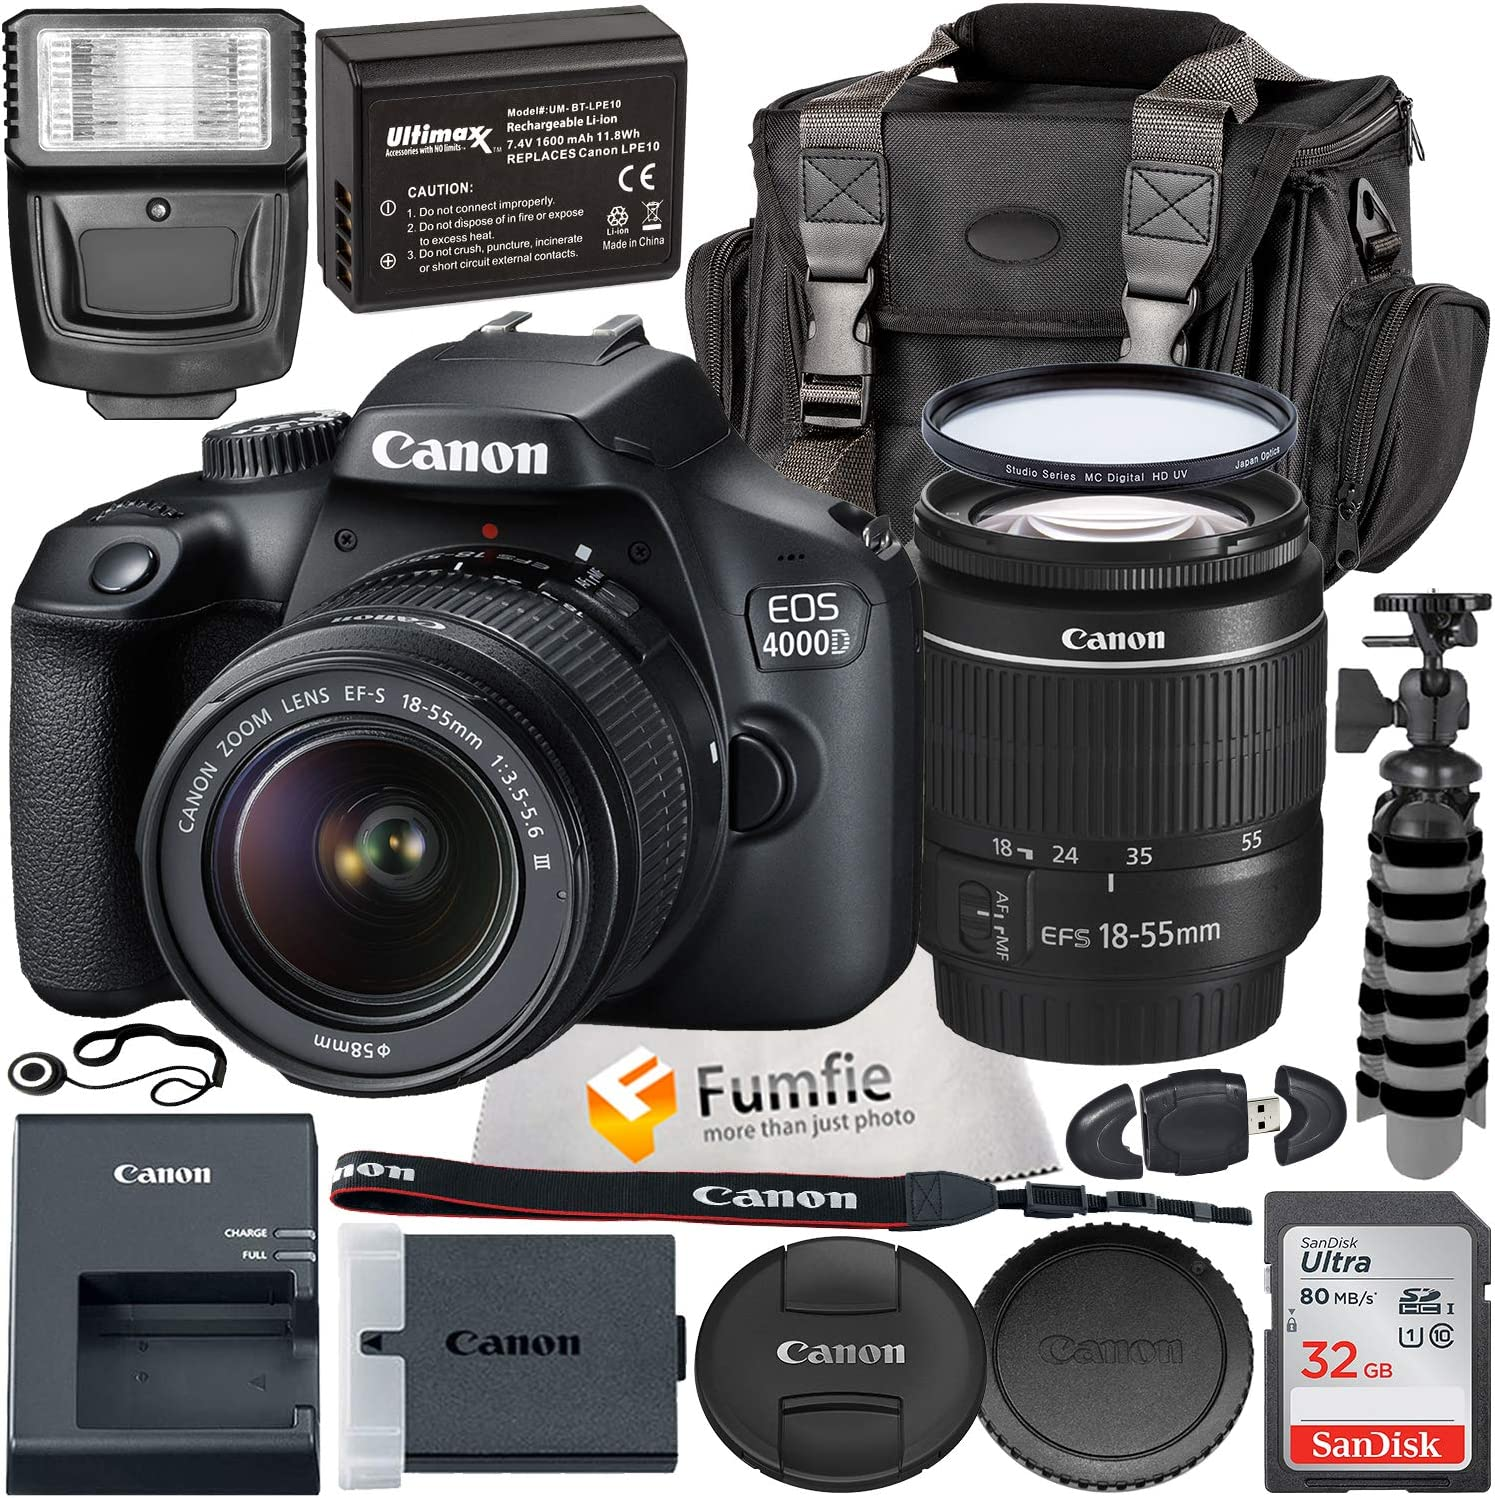 Canon EOS 4000D w/EF-S 18-55mm f/3.5-5.6 III Lens with Professional Accessory Bundle